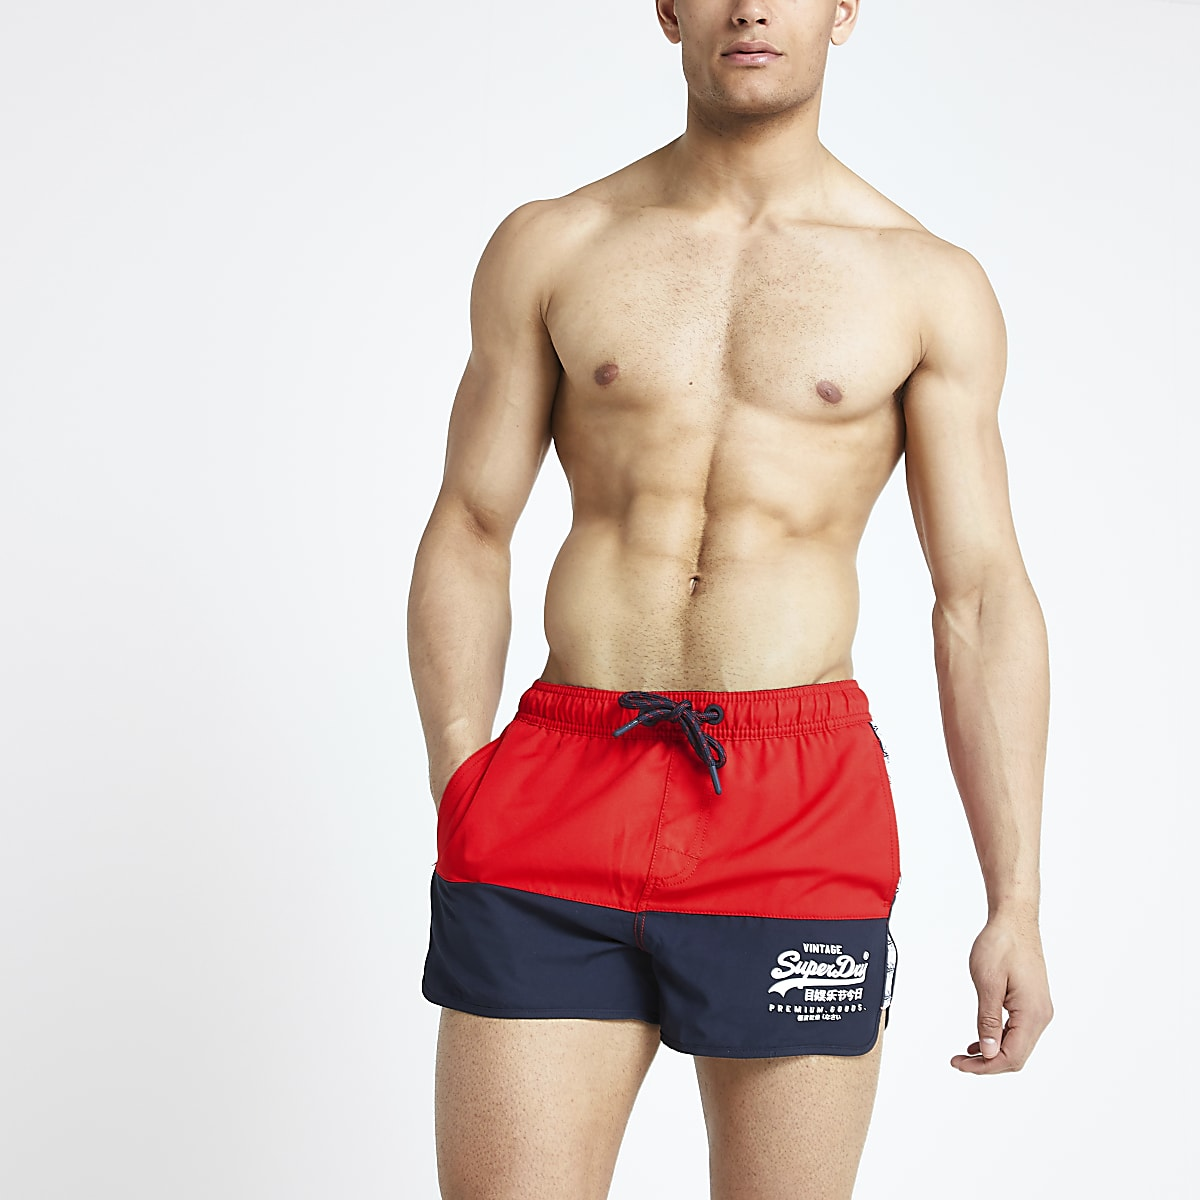 Superdry red runner swim trunks